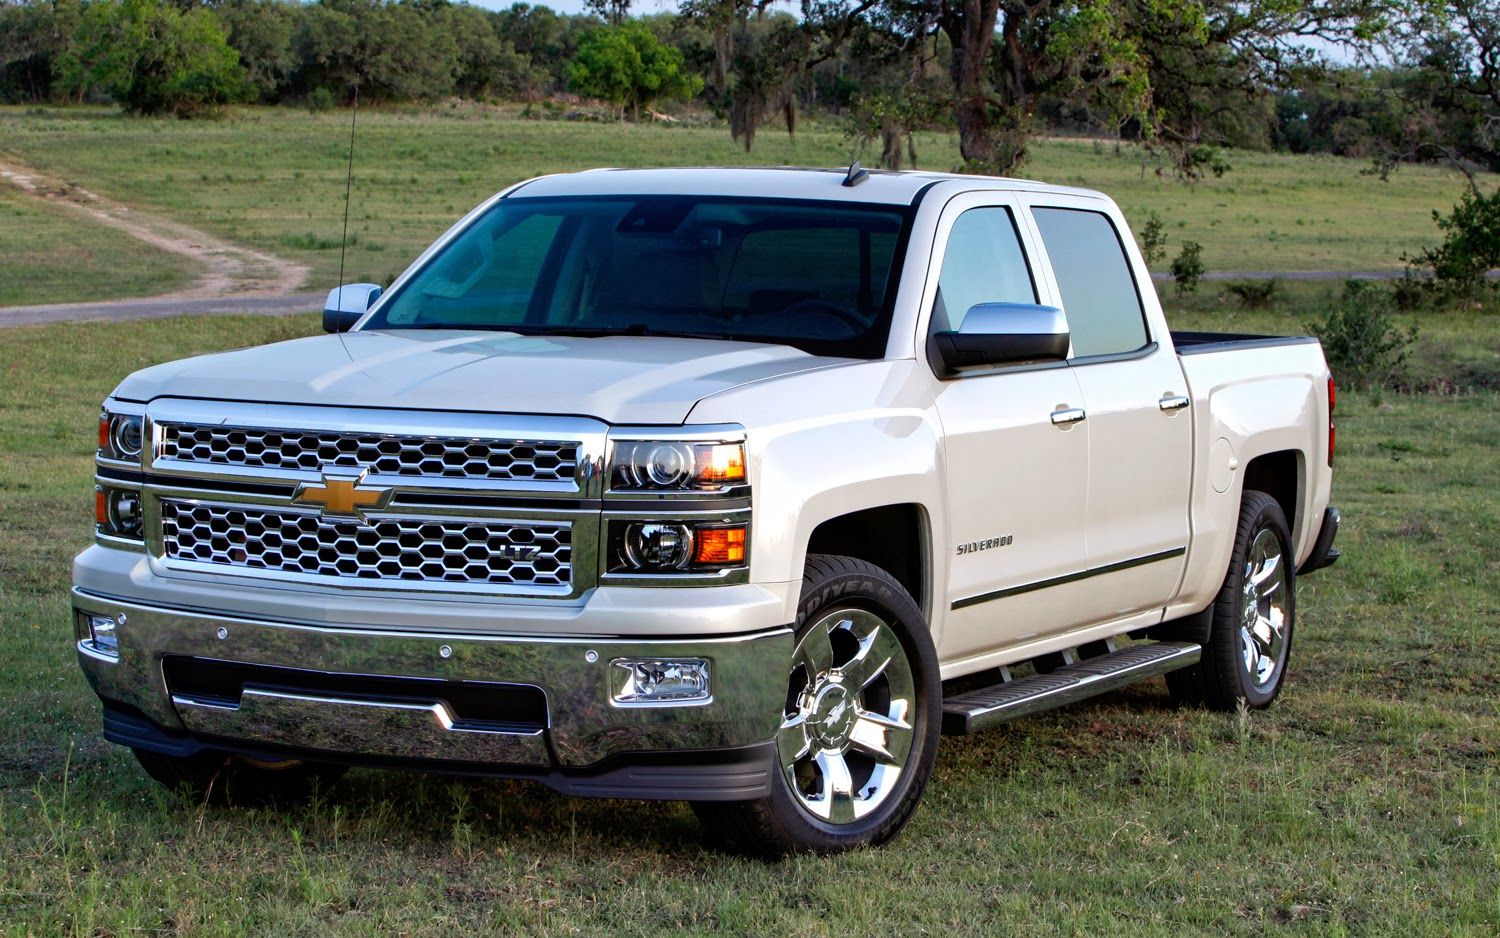 Silverado 2003 chevy silverado 1500 accessories : 1993 Chevy Silverado | Cars and Trucks I've Owned | Pinterest ...